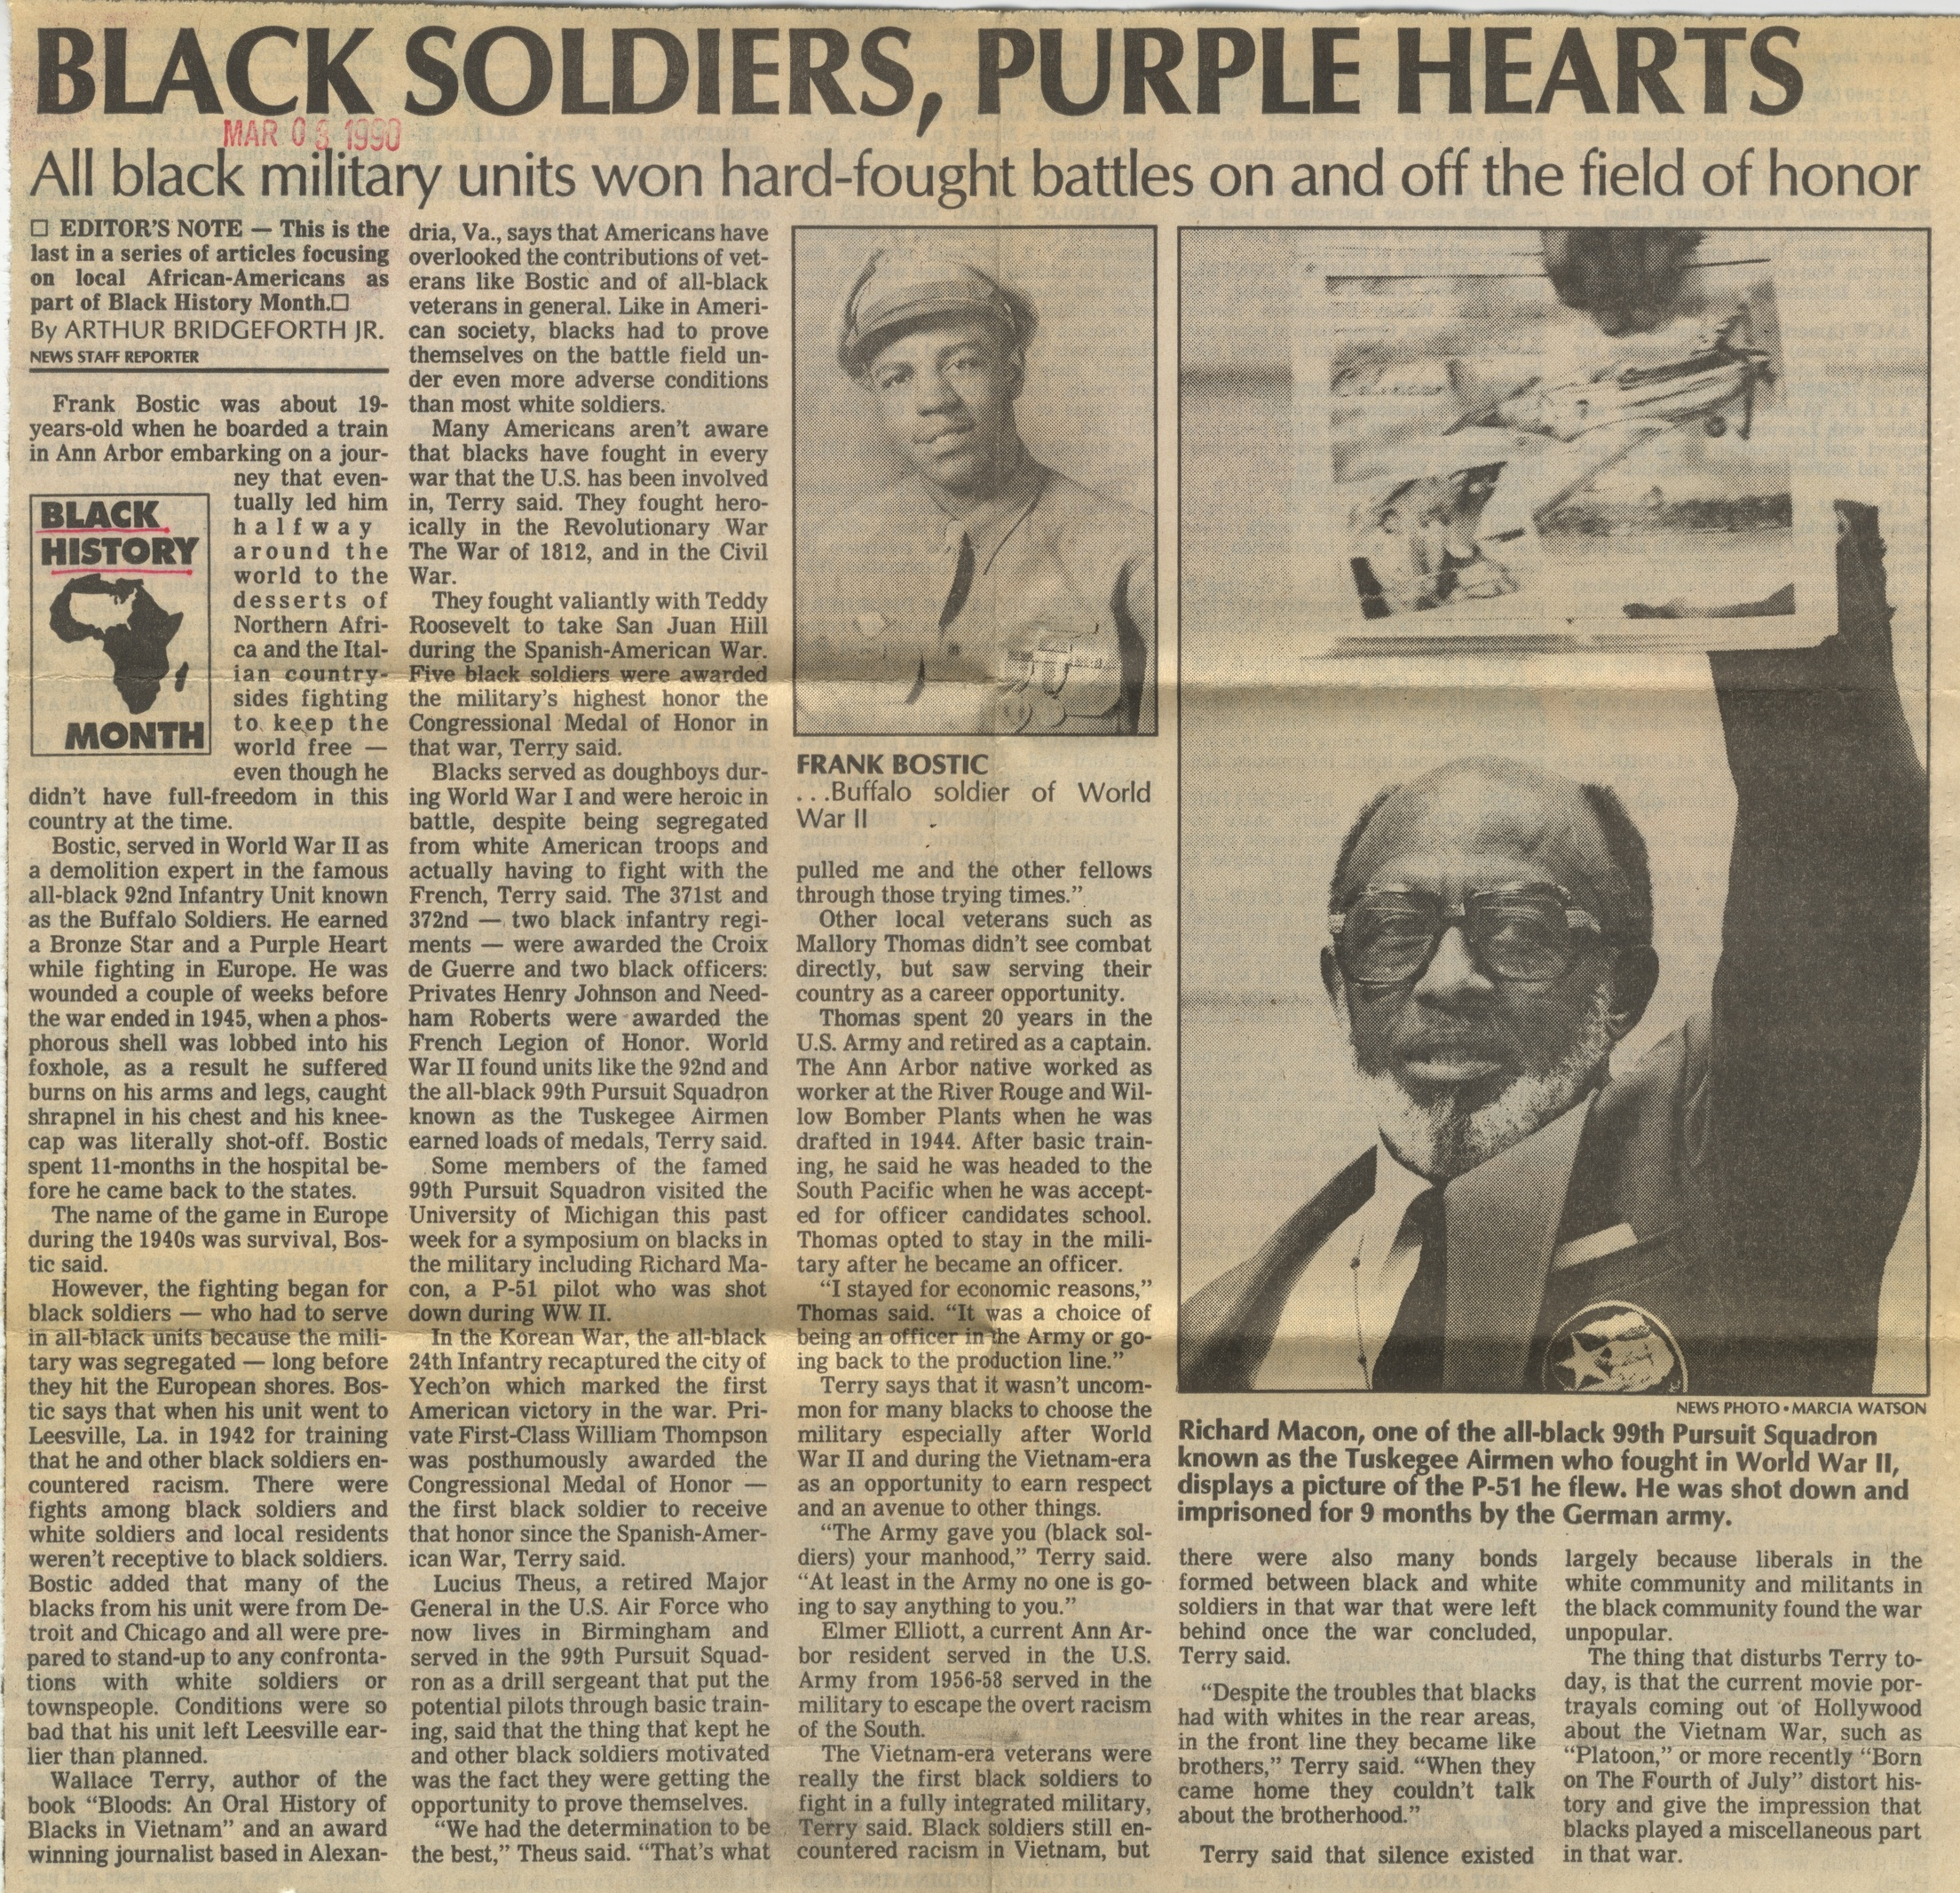 Black Soldiers, Purple Hearts image